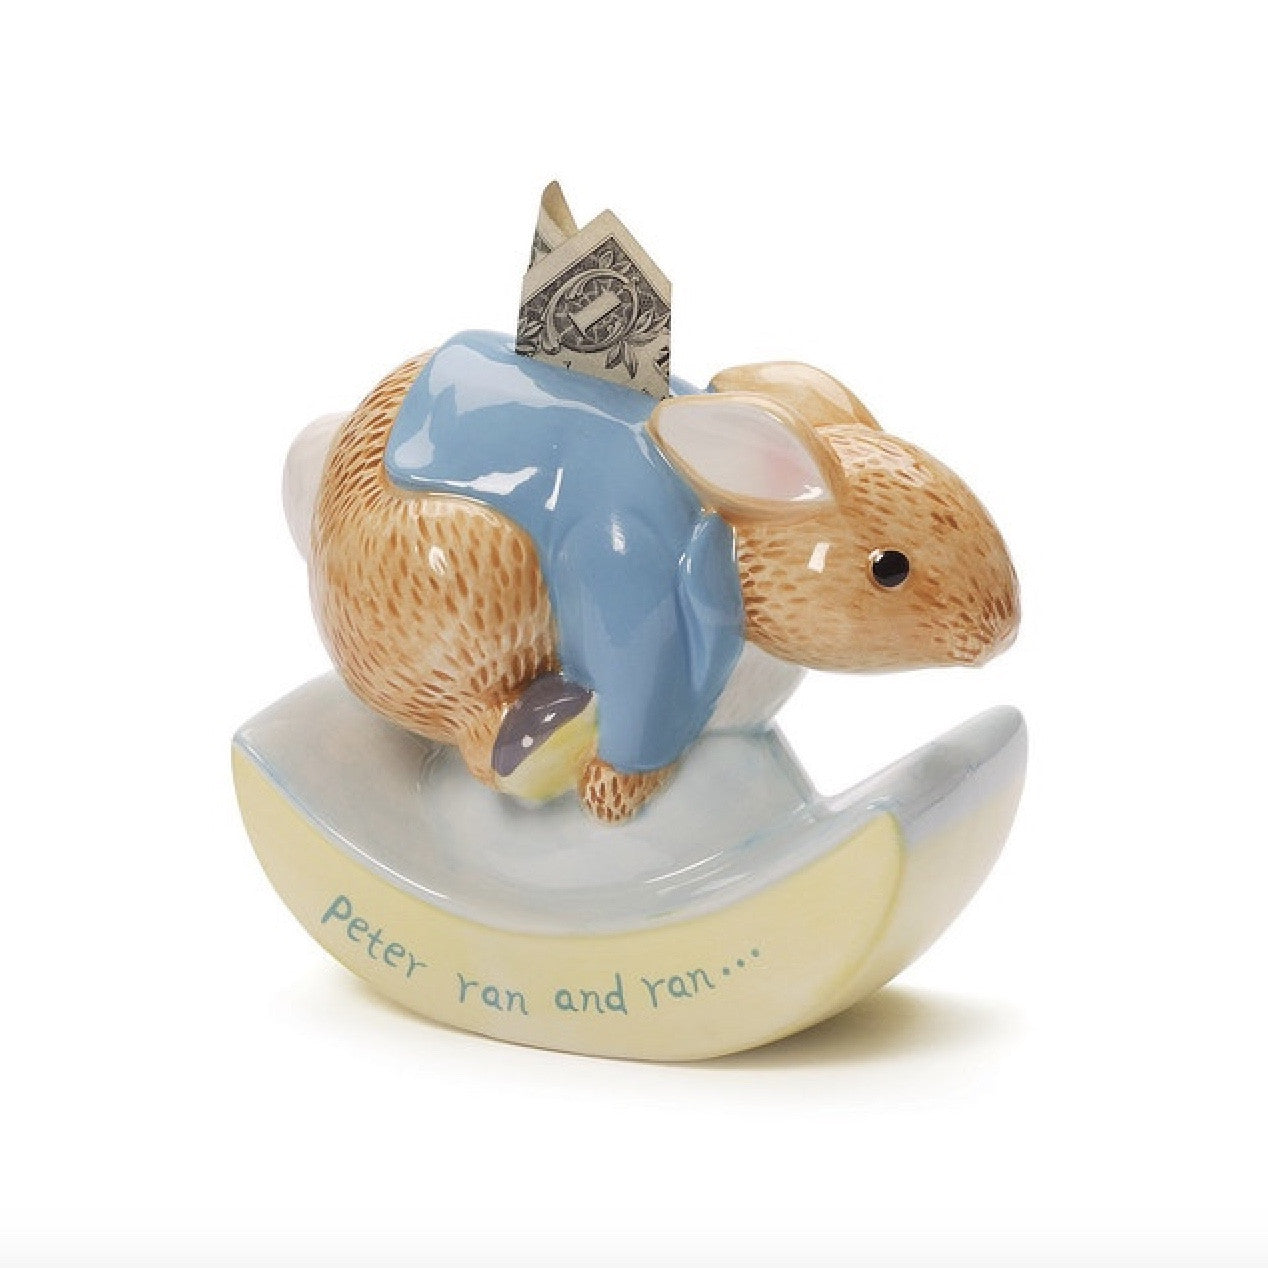 Baby Gund - Peter Rabbit Ceramic Bank, EC-Enesco Canada, Putti Fine Furnishings